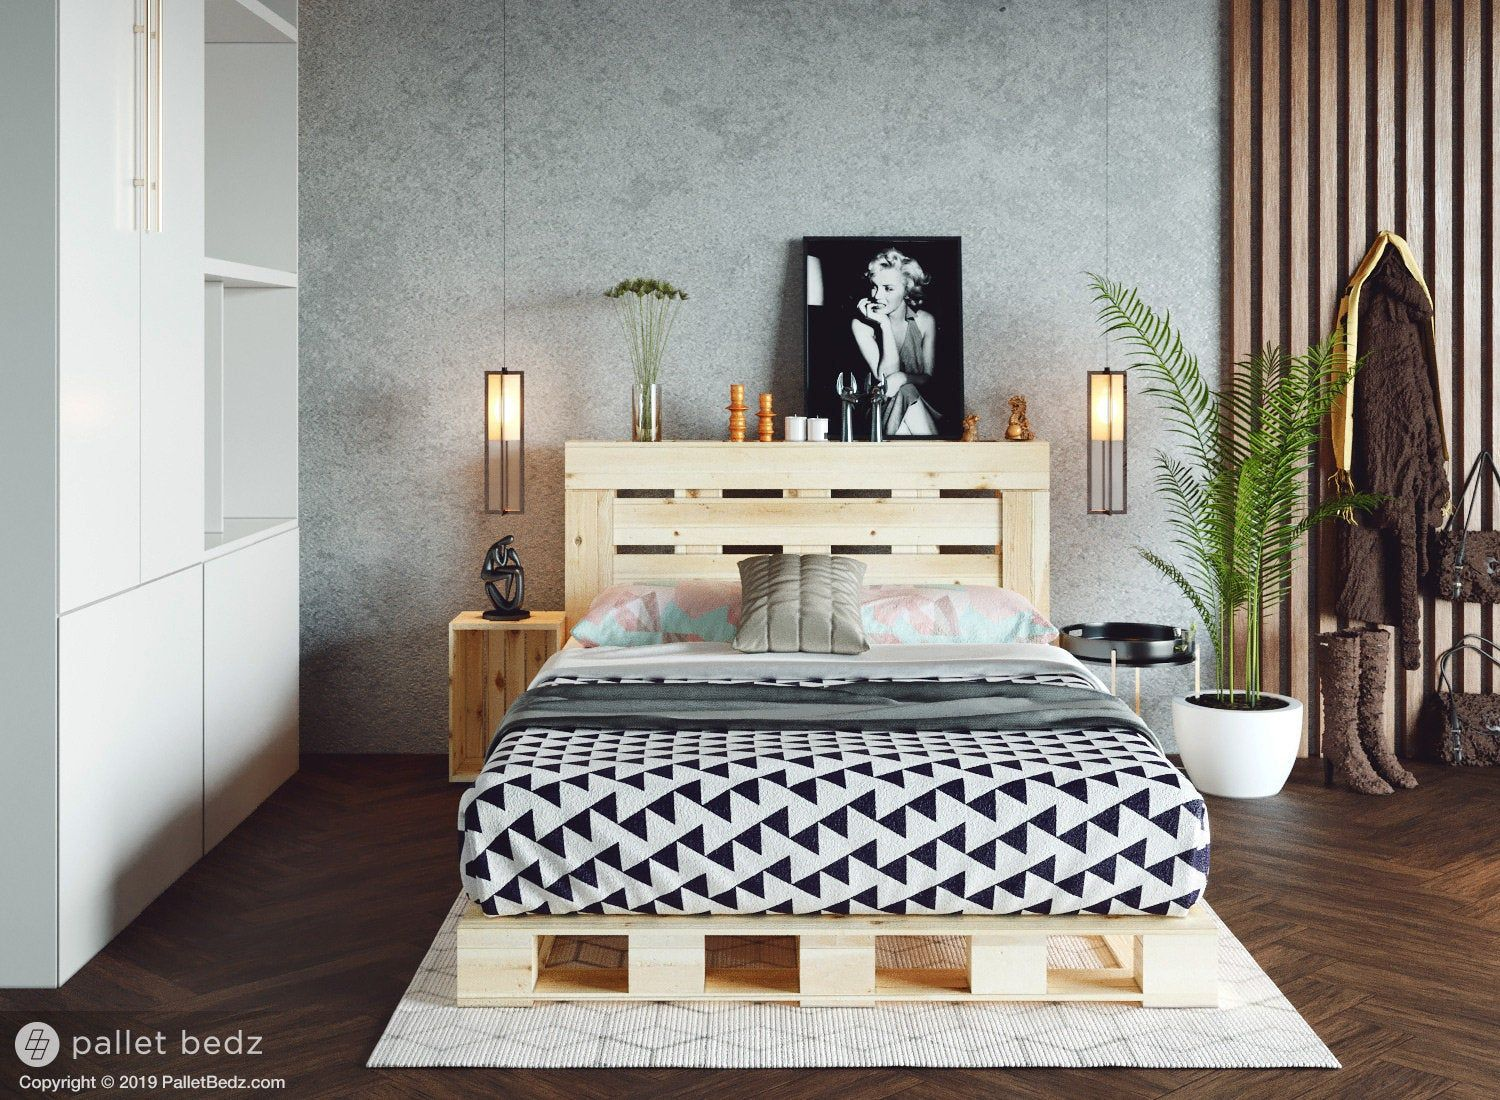 Pallet Bed The Full Size Includes Headboard and